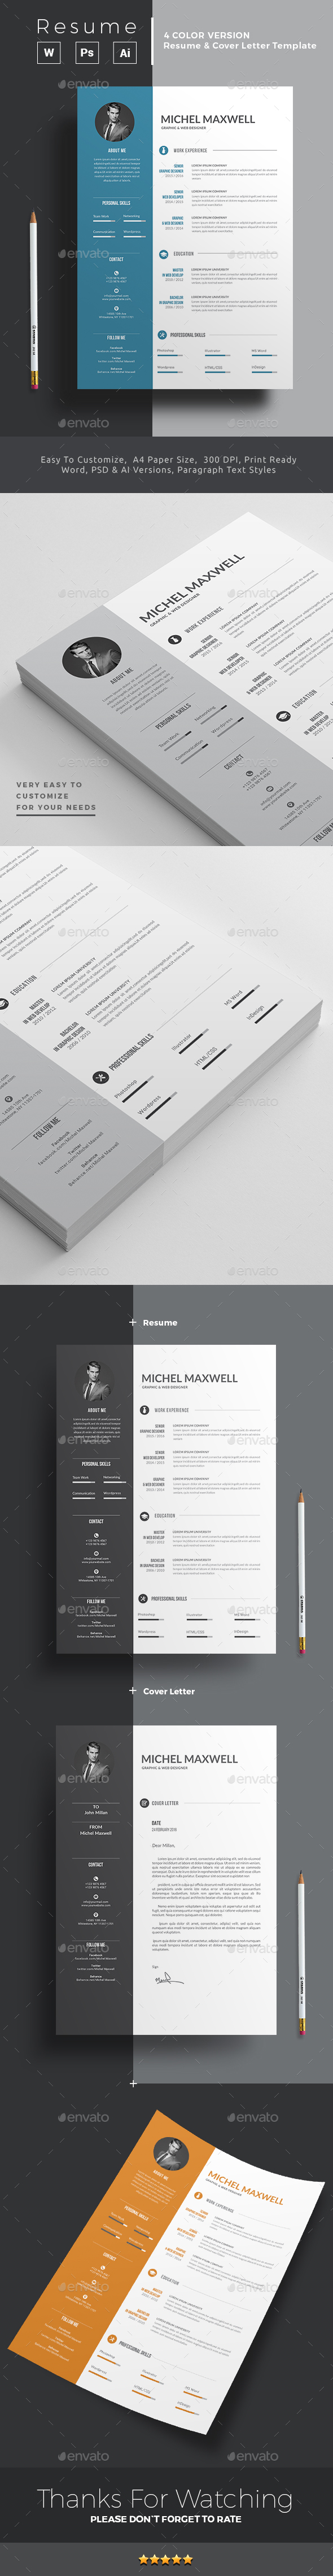 professional resume   cv template is made in adobe photoshop  u0026 illustrator format and then it was